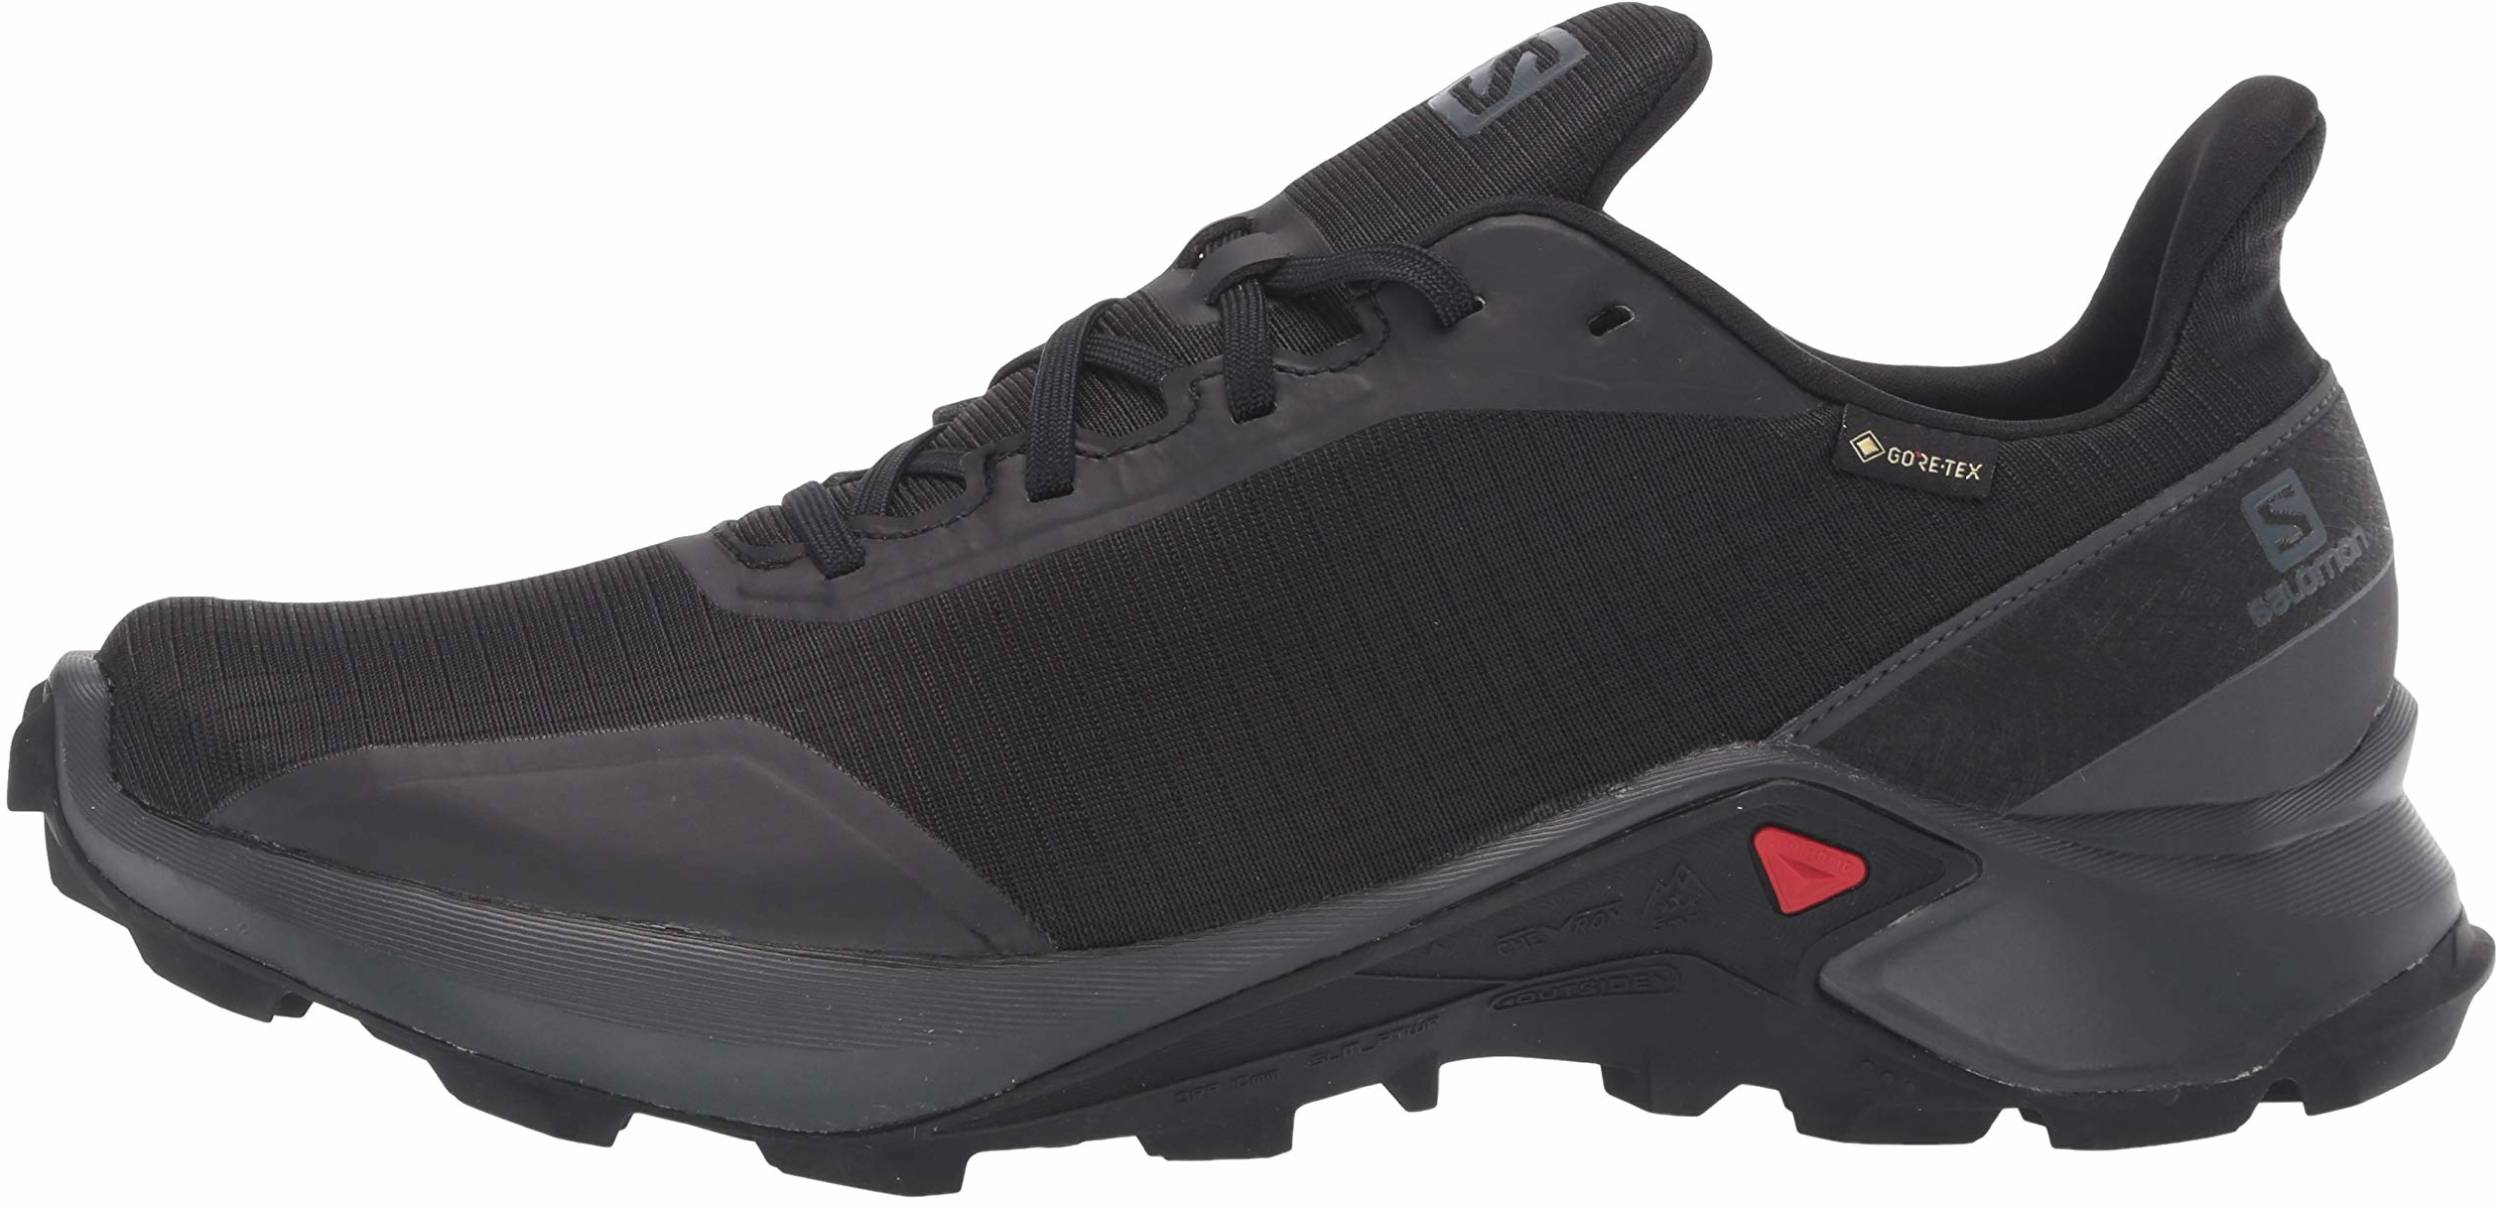 salomon trail running shoes amazon oficial review